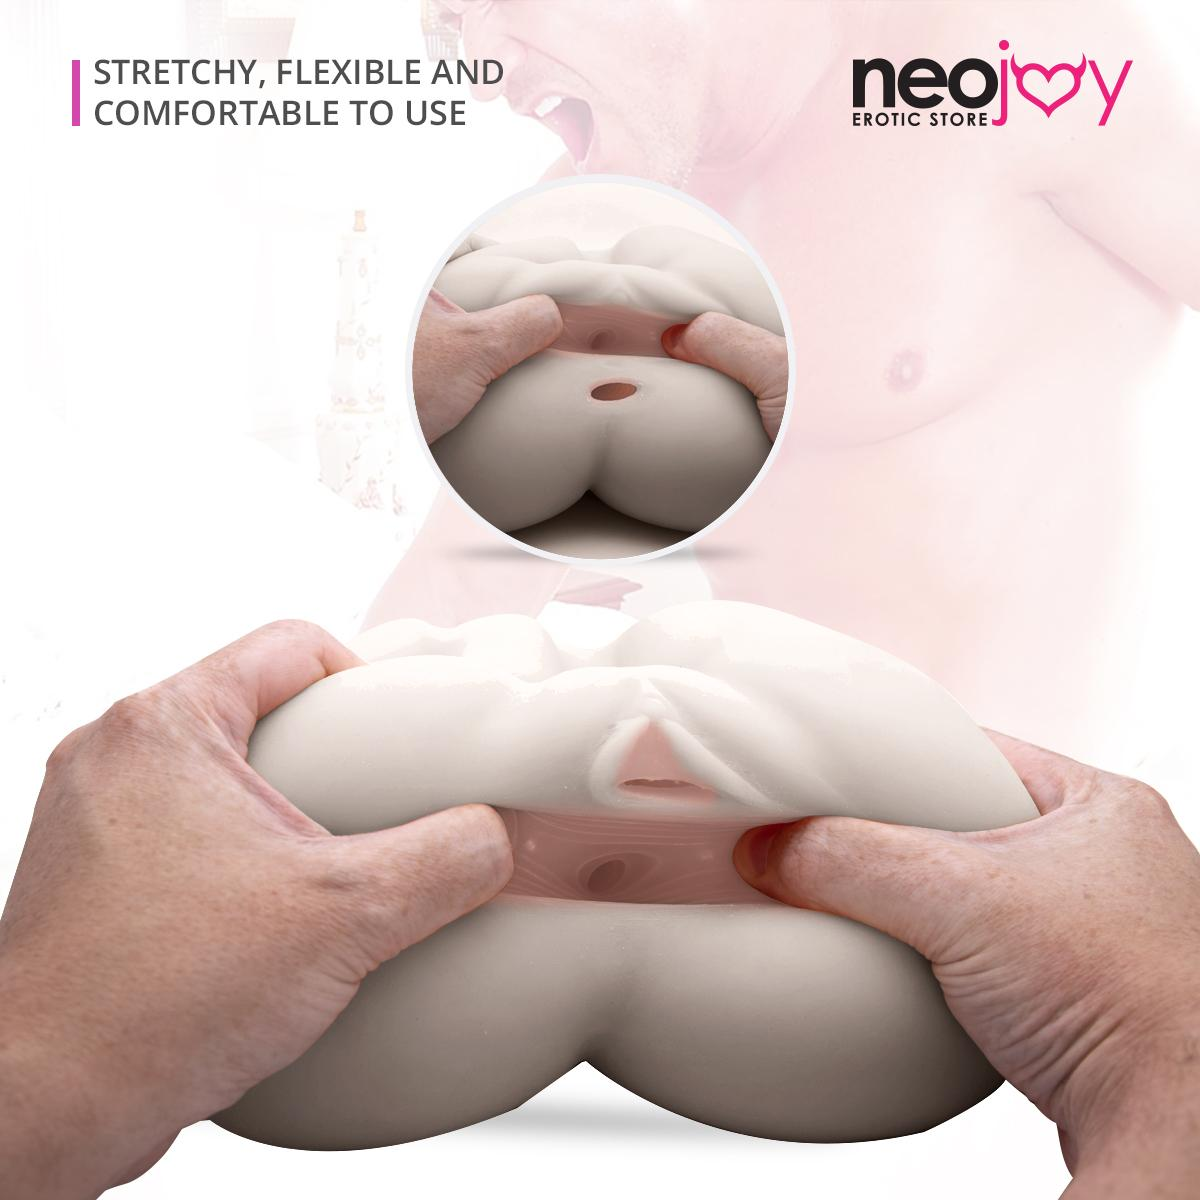 Neojoy - Miss Derriere - (Japanese) 2.17Kg